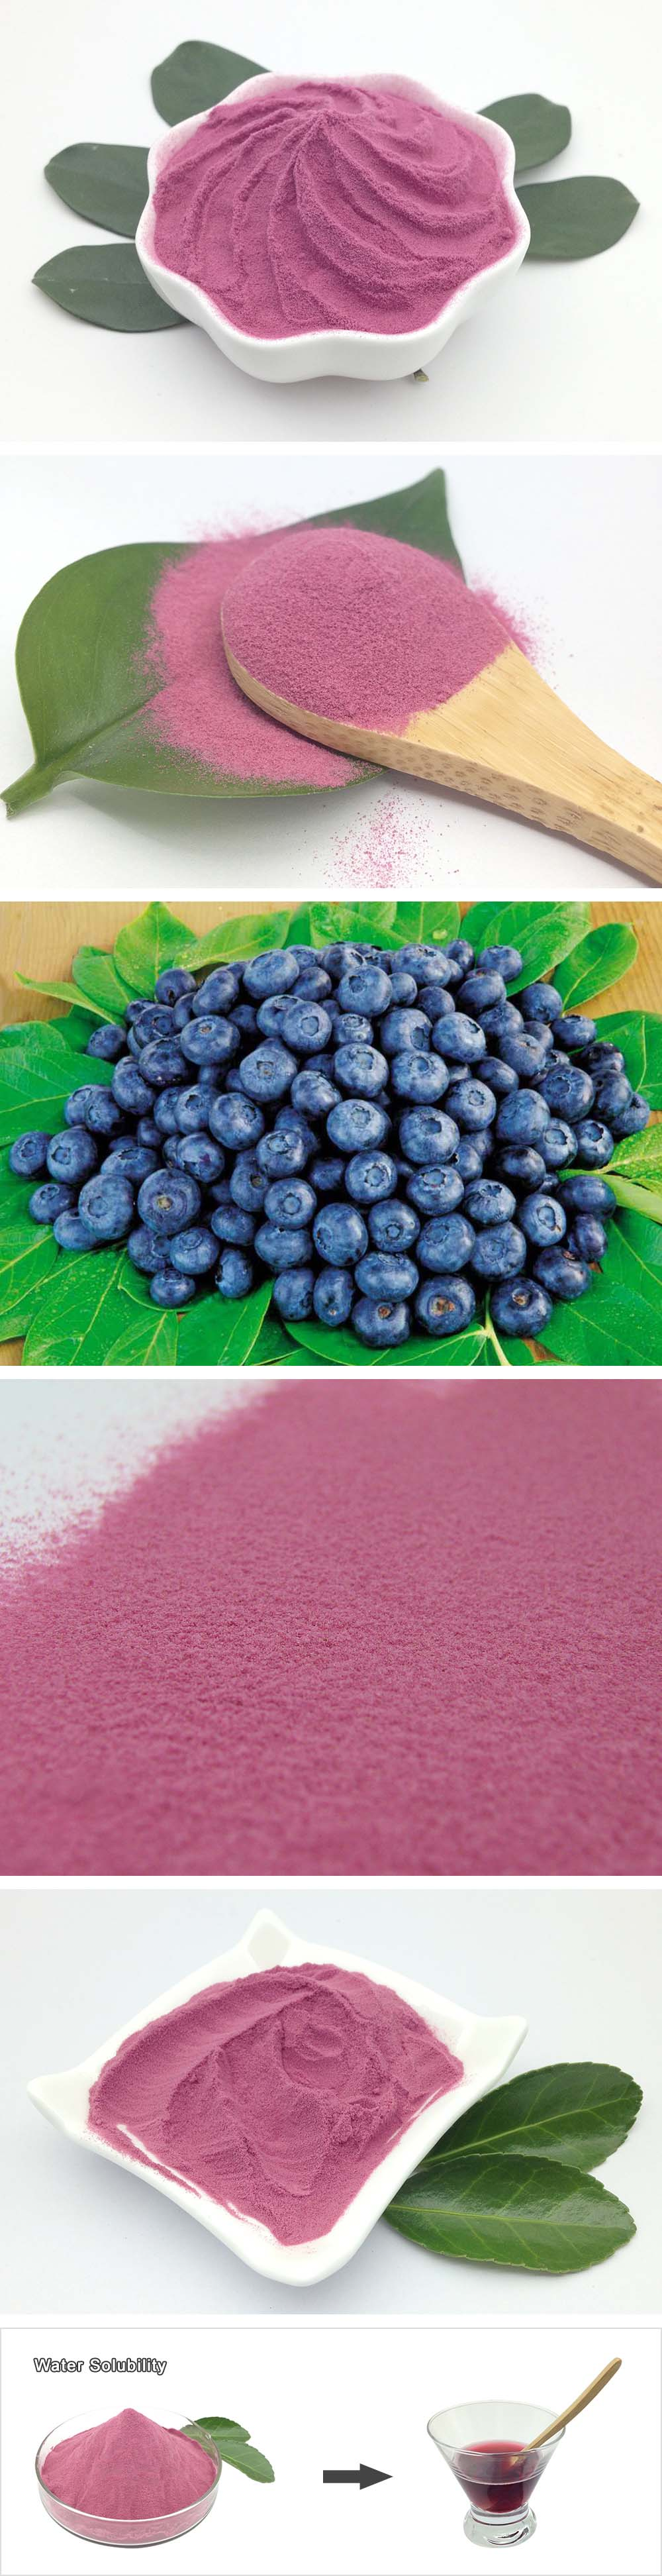 Manufacturer Wholesale Concentrate Blueberry Juice Powder